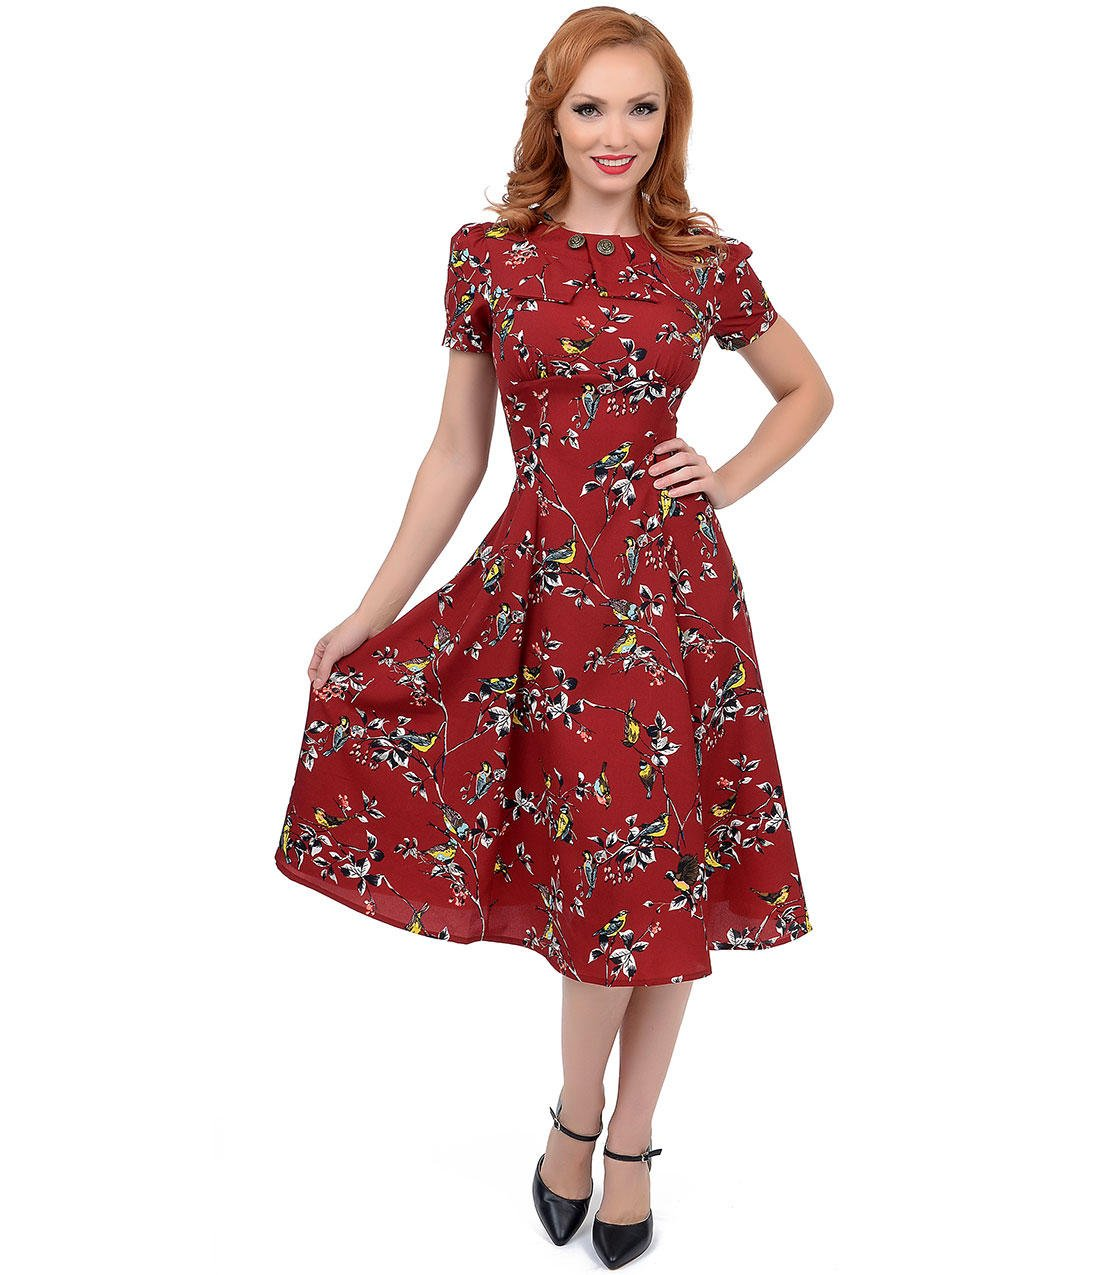 ca7964ee560 Hell Bunny 1950s Style Carmine Red Birdy from Unique Vintage